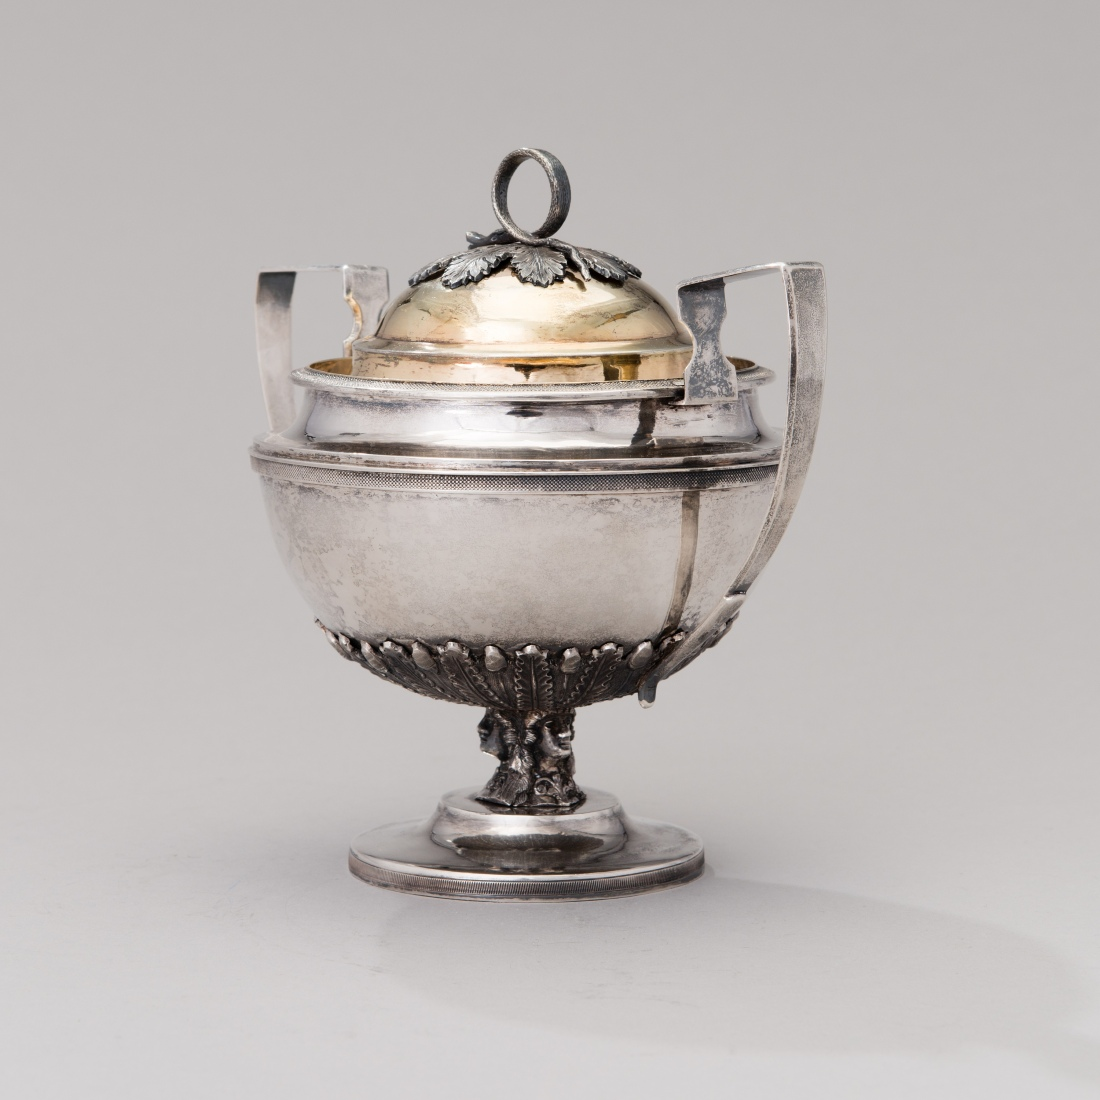 Sugar bowl with lid. 1816.